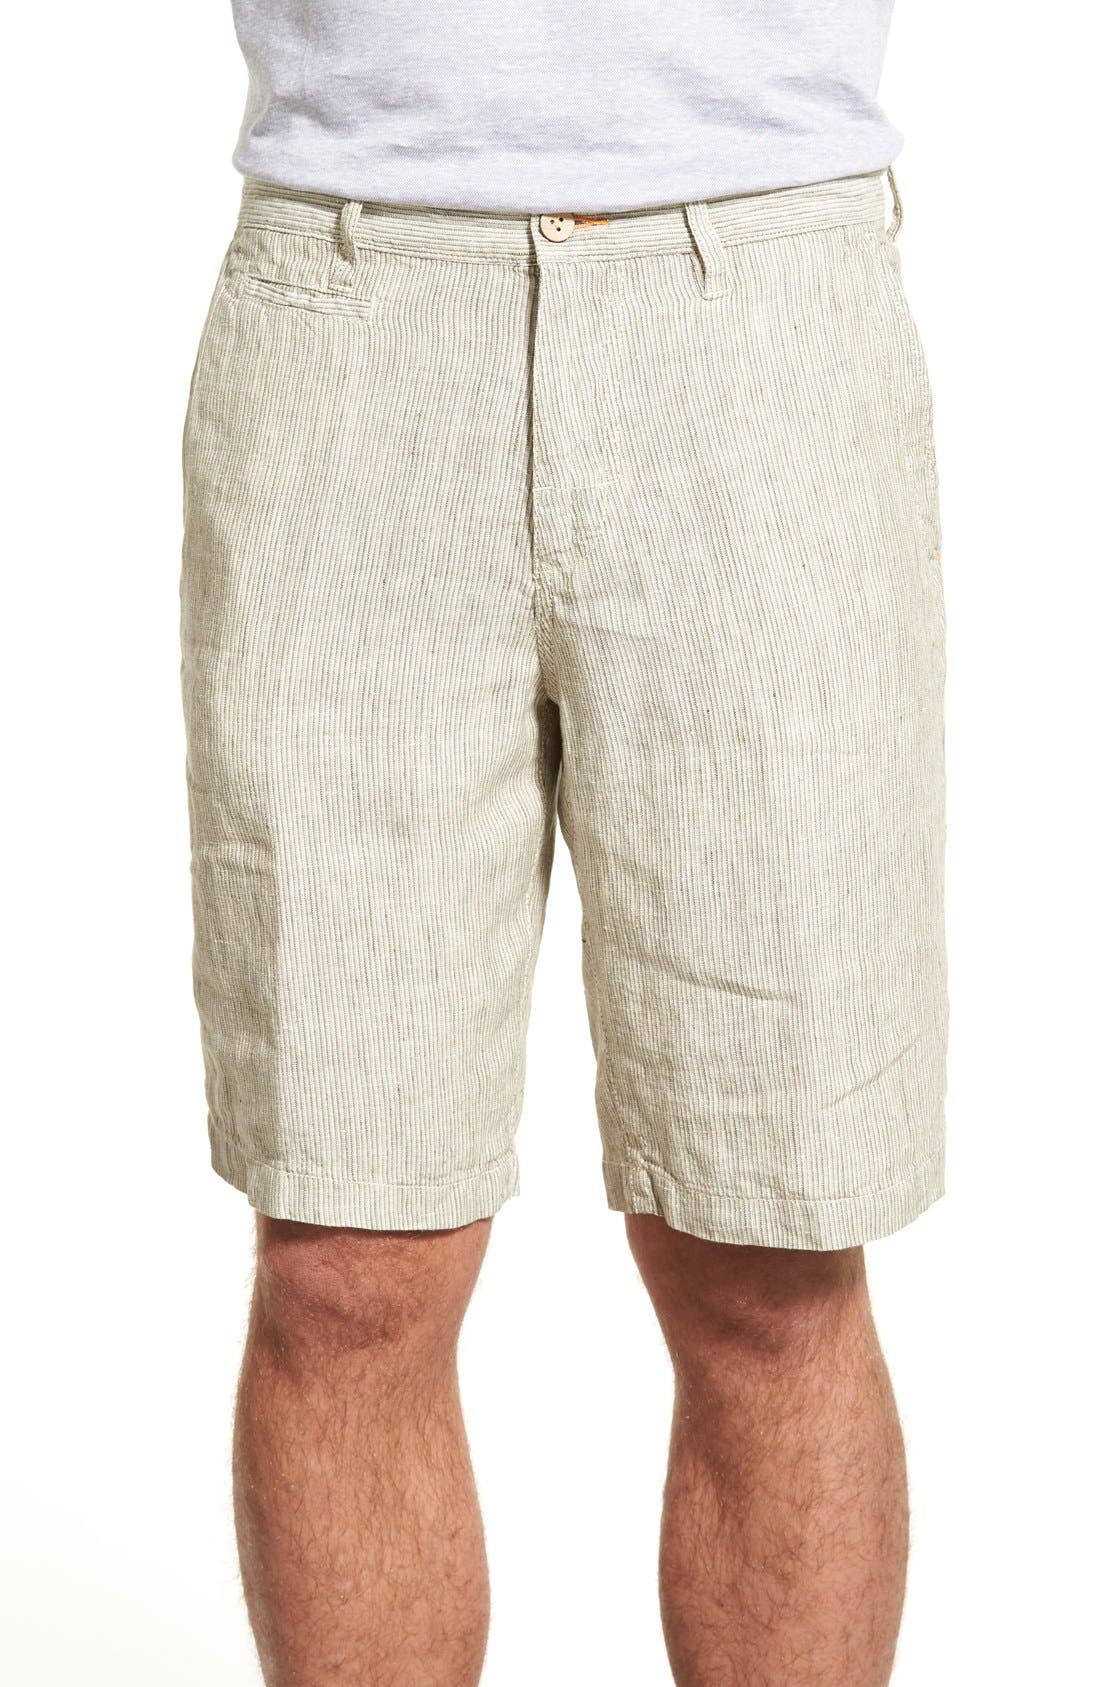 Main Image - Tommy Bahama 'Line of the Times' Relaxed Fit Striped Linen Shorts